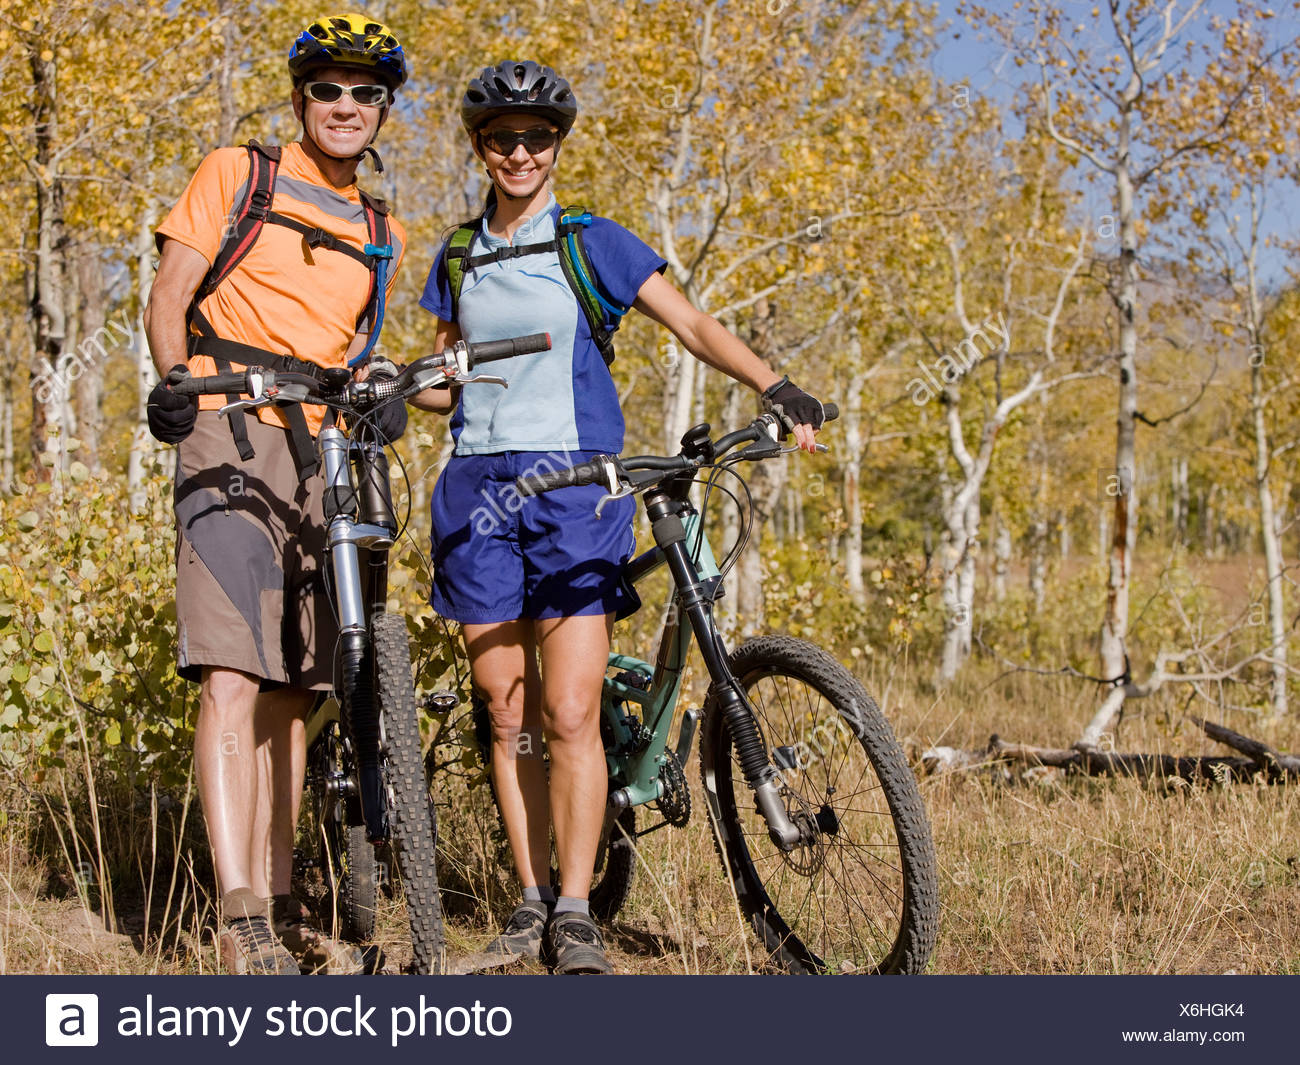 Male and female mountain bikers. - Stock Image